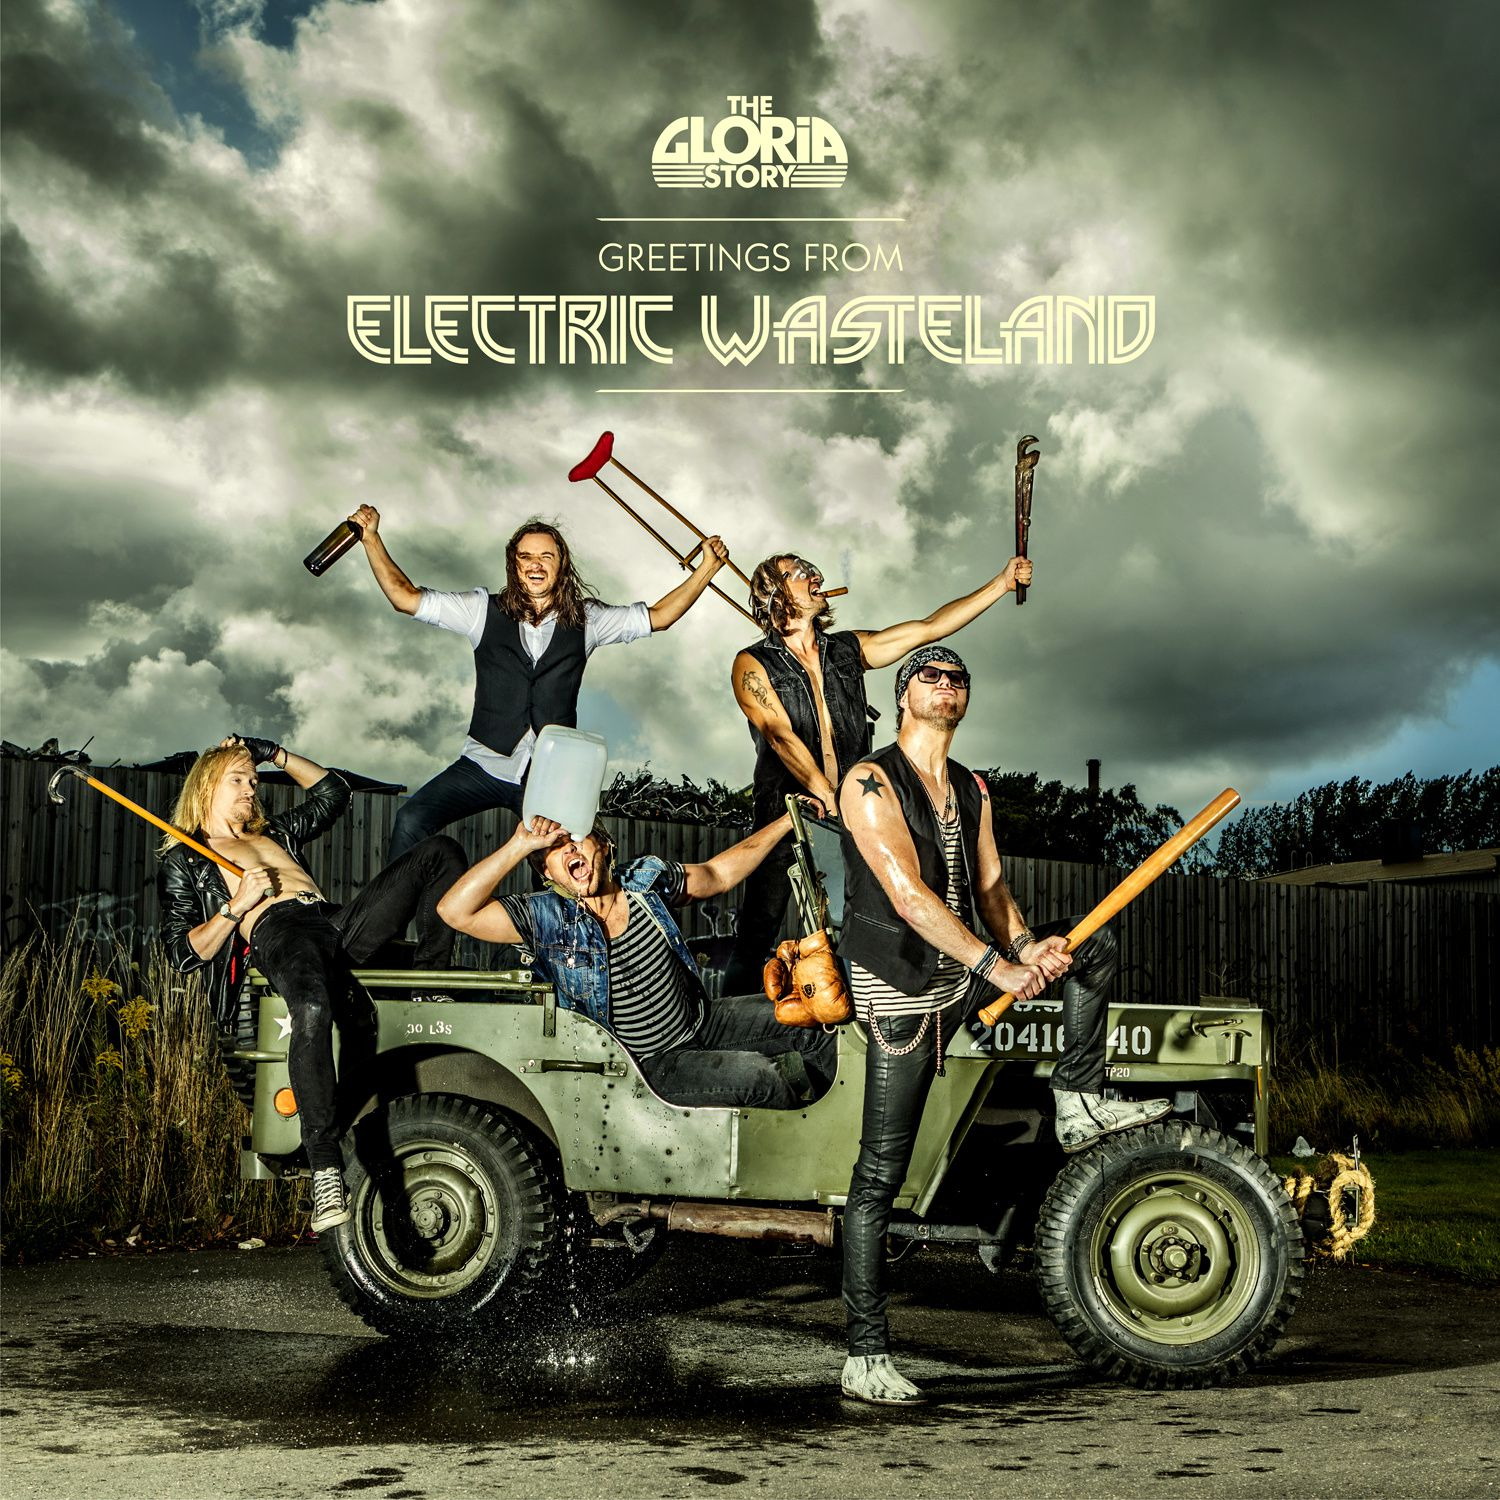 CD review THE GLORIA STORY &quot&#x3B;Greeting From Electric Wasteland&quot&#x3B;